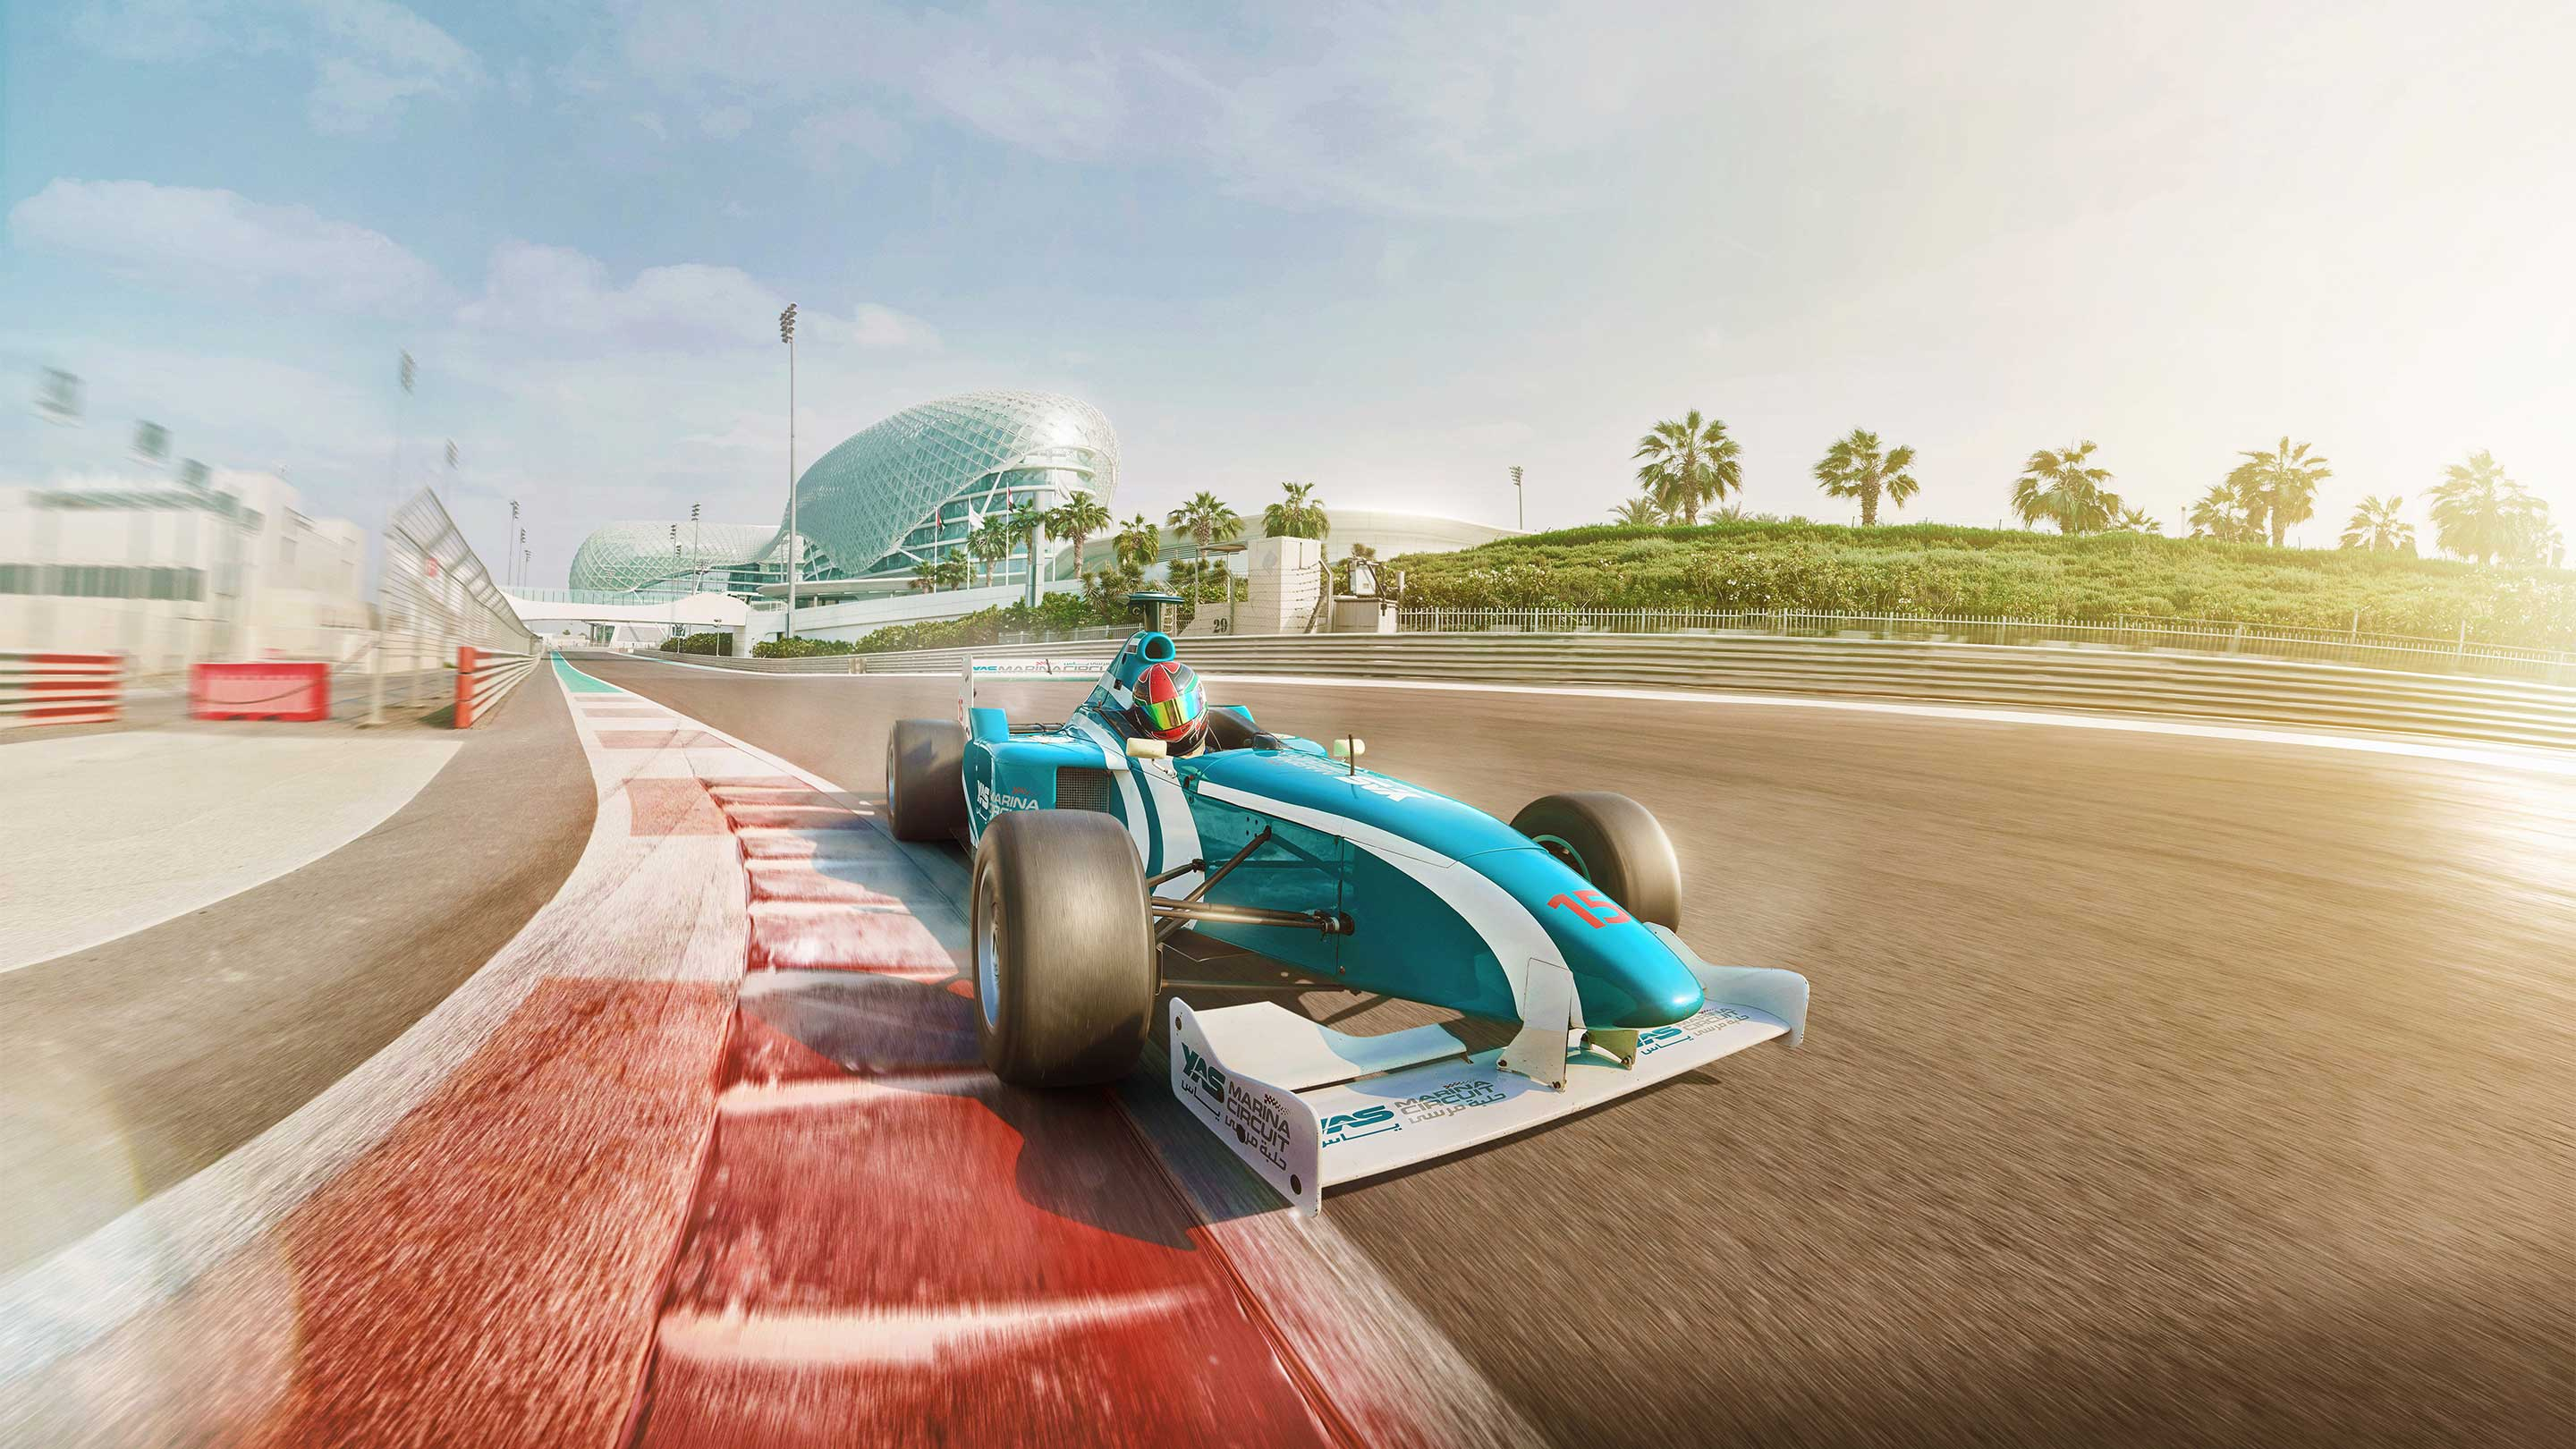 16-9_Credit-ABU-DHABI-TOURISM-_-CULTURE-AUTHORITY-Yas_Marina_Circuit